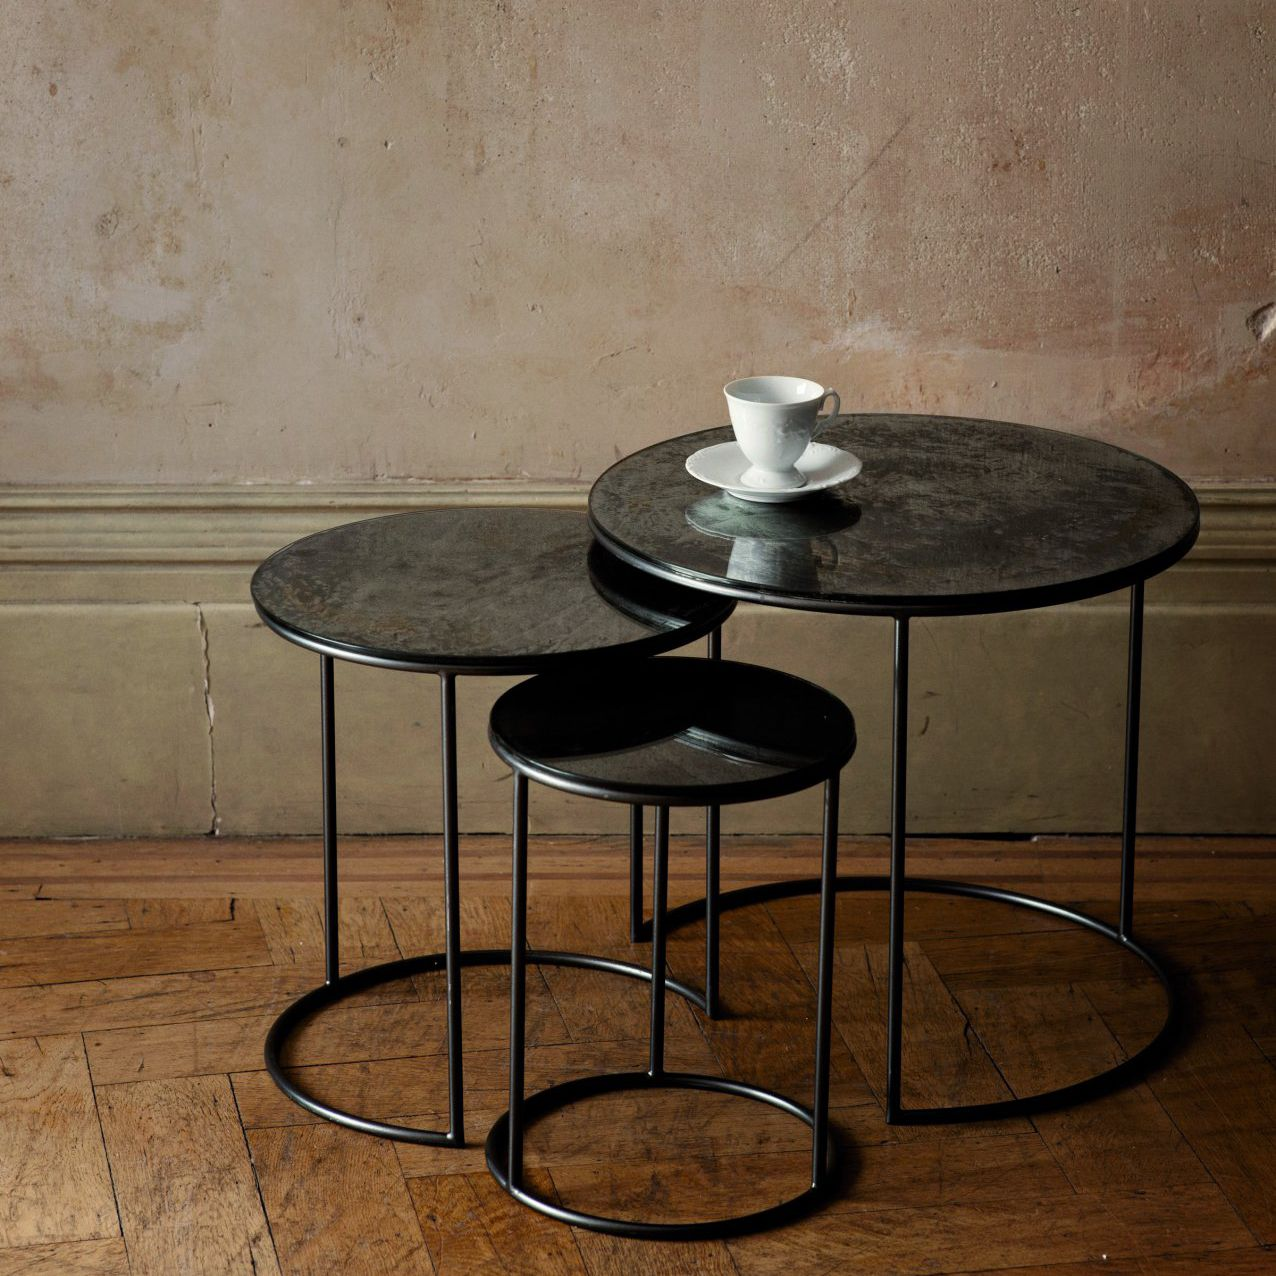 Contemporary Nesting Tables / Glass / Steel / Round   MOON